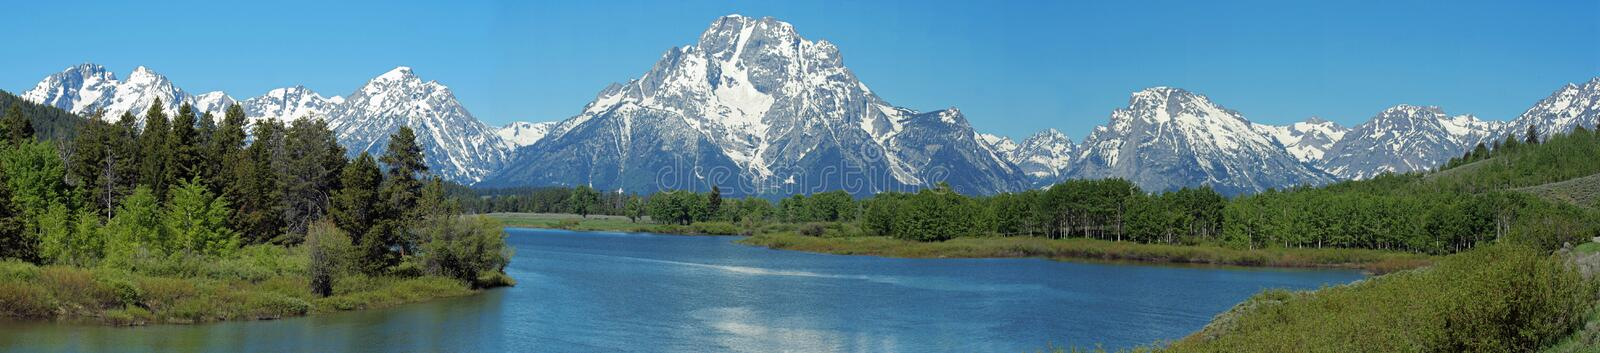 Panorama di Teton immagine stock